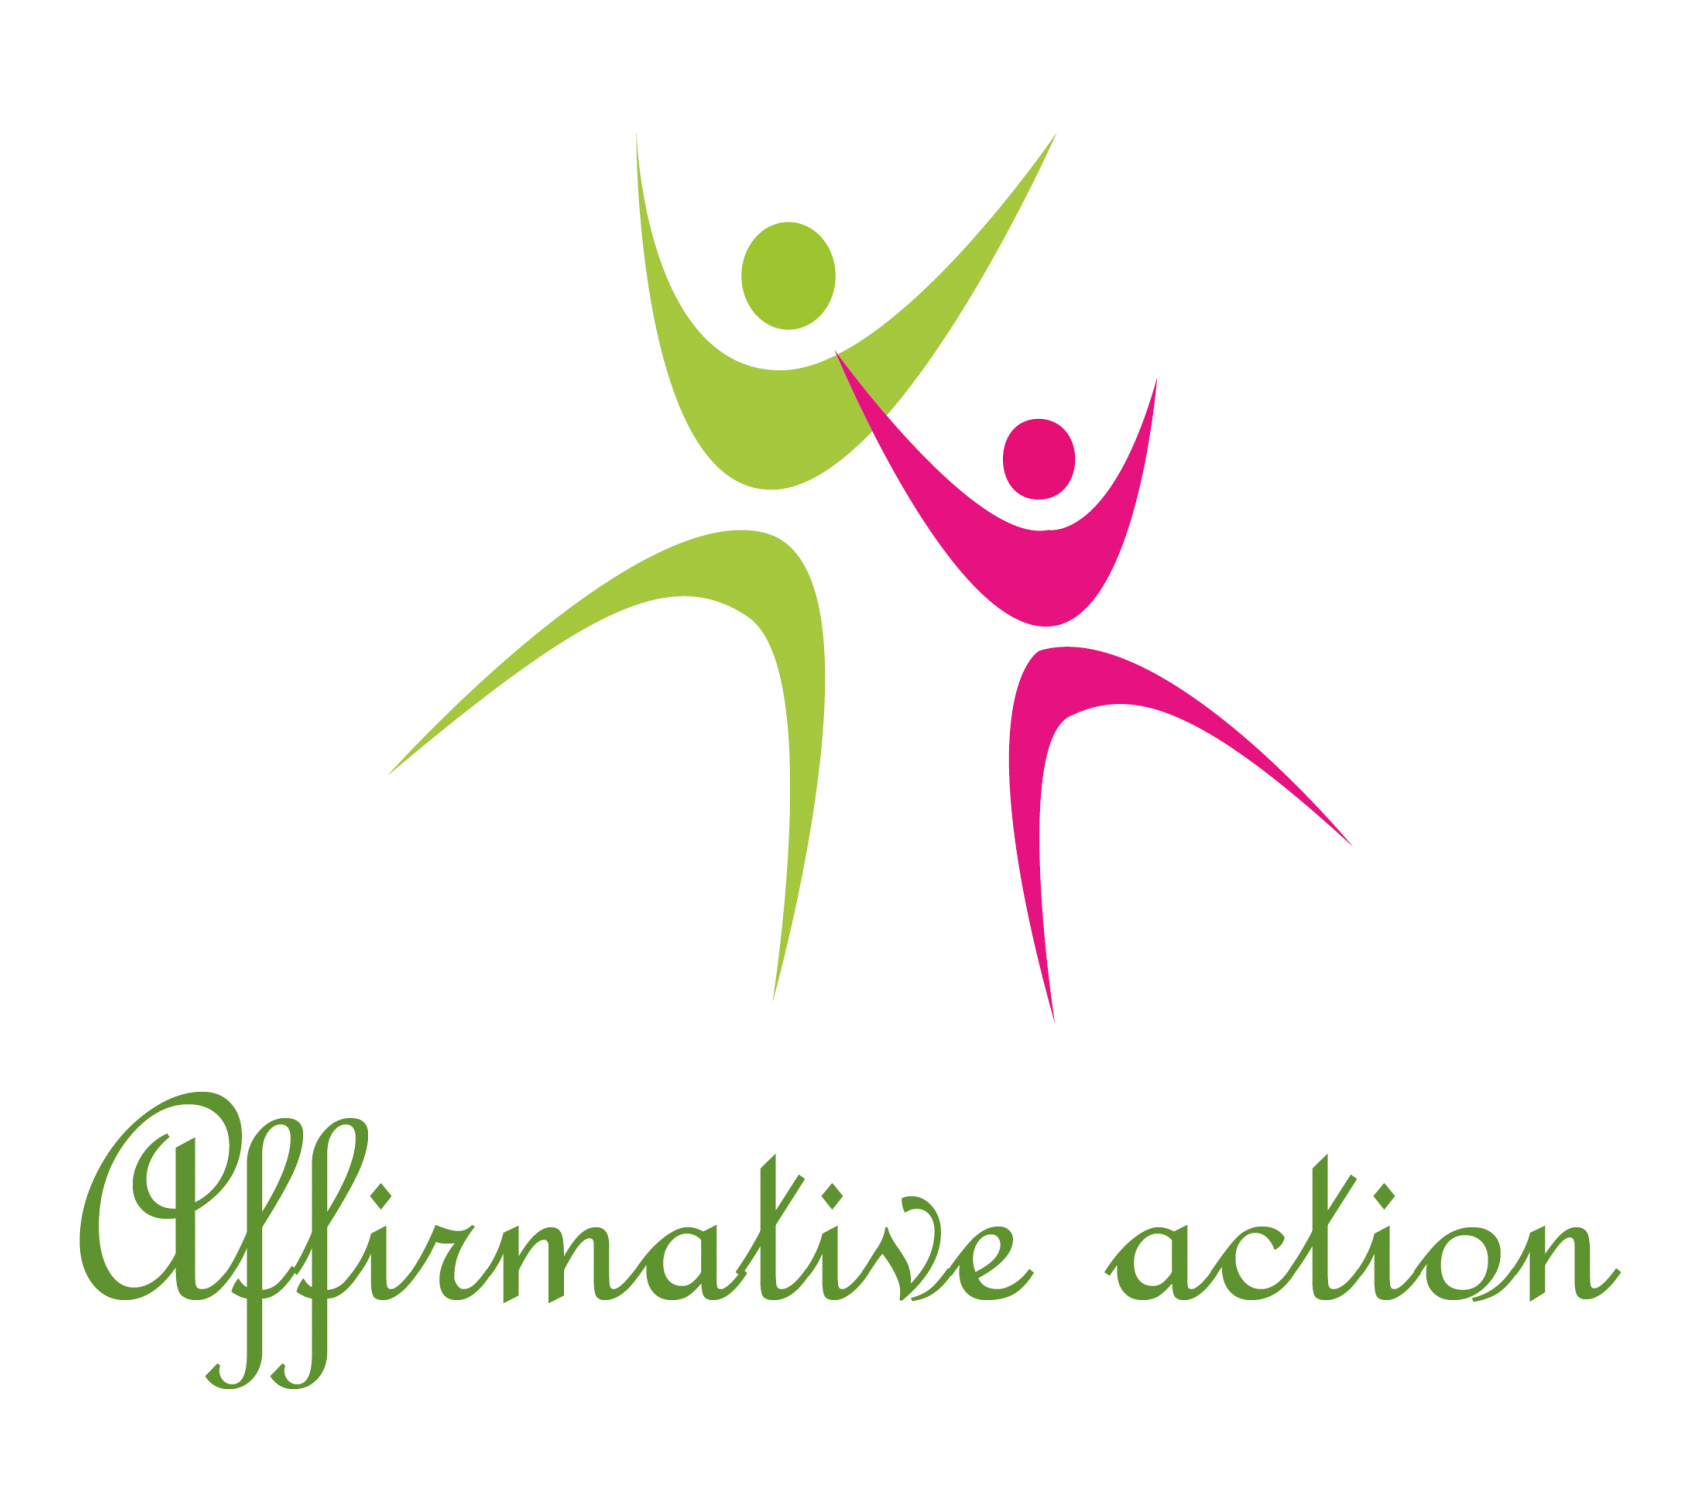 cropped-05-affirmative-action-official-logo-final-e1544498711929-1.png